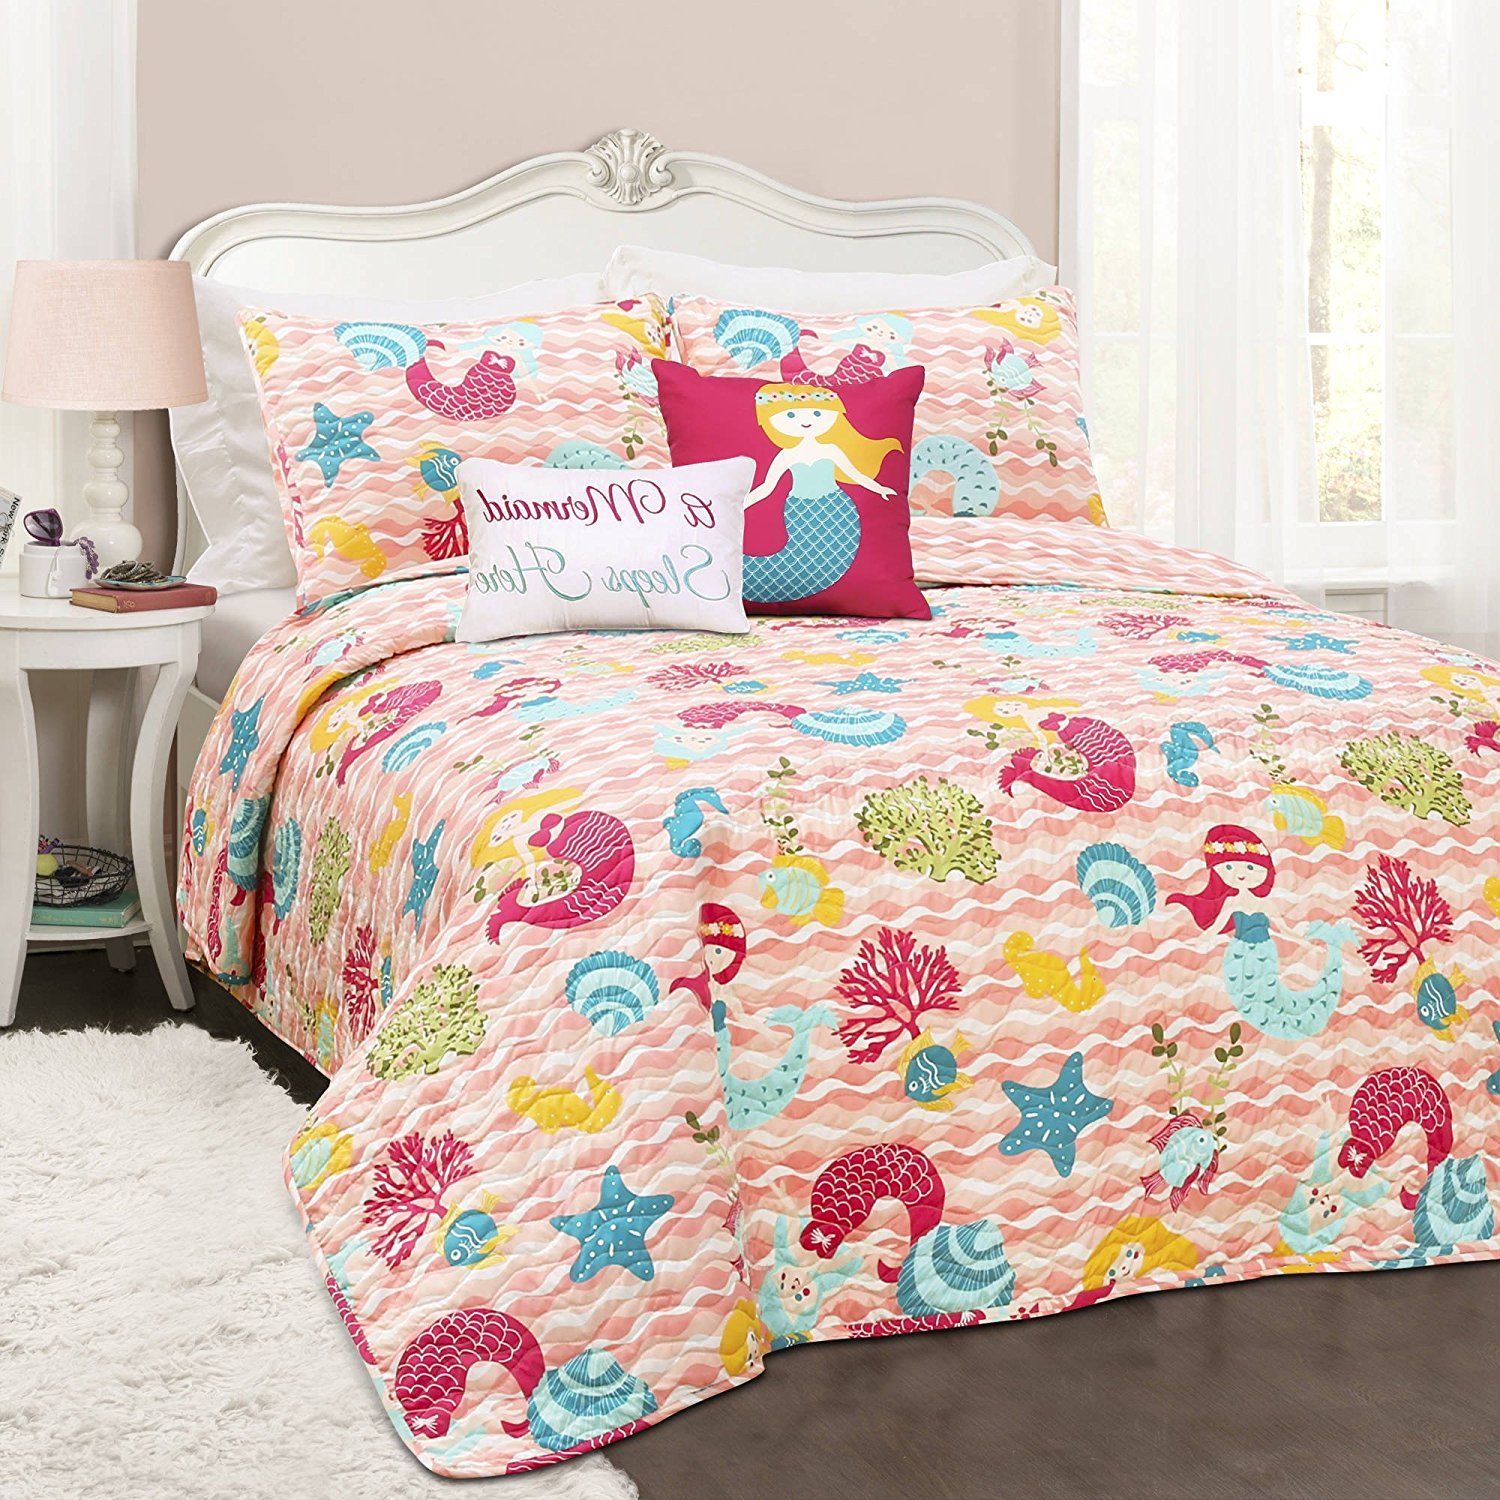 4 Piece Kids Girls Pink Red Blue Green Yellow Twin Quilt Set, Mermaid Themed Reversible Bedding Waves Bright Coral Sea Shell Chic Ocean Cute Adorable Stylish Fun Sweet Pretty Elegant, Polyester